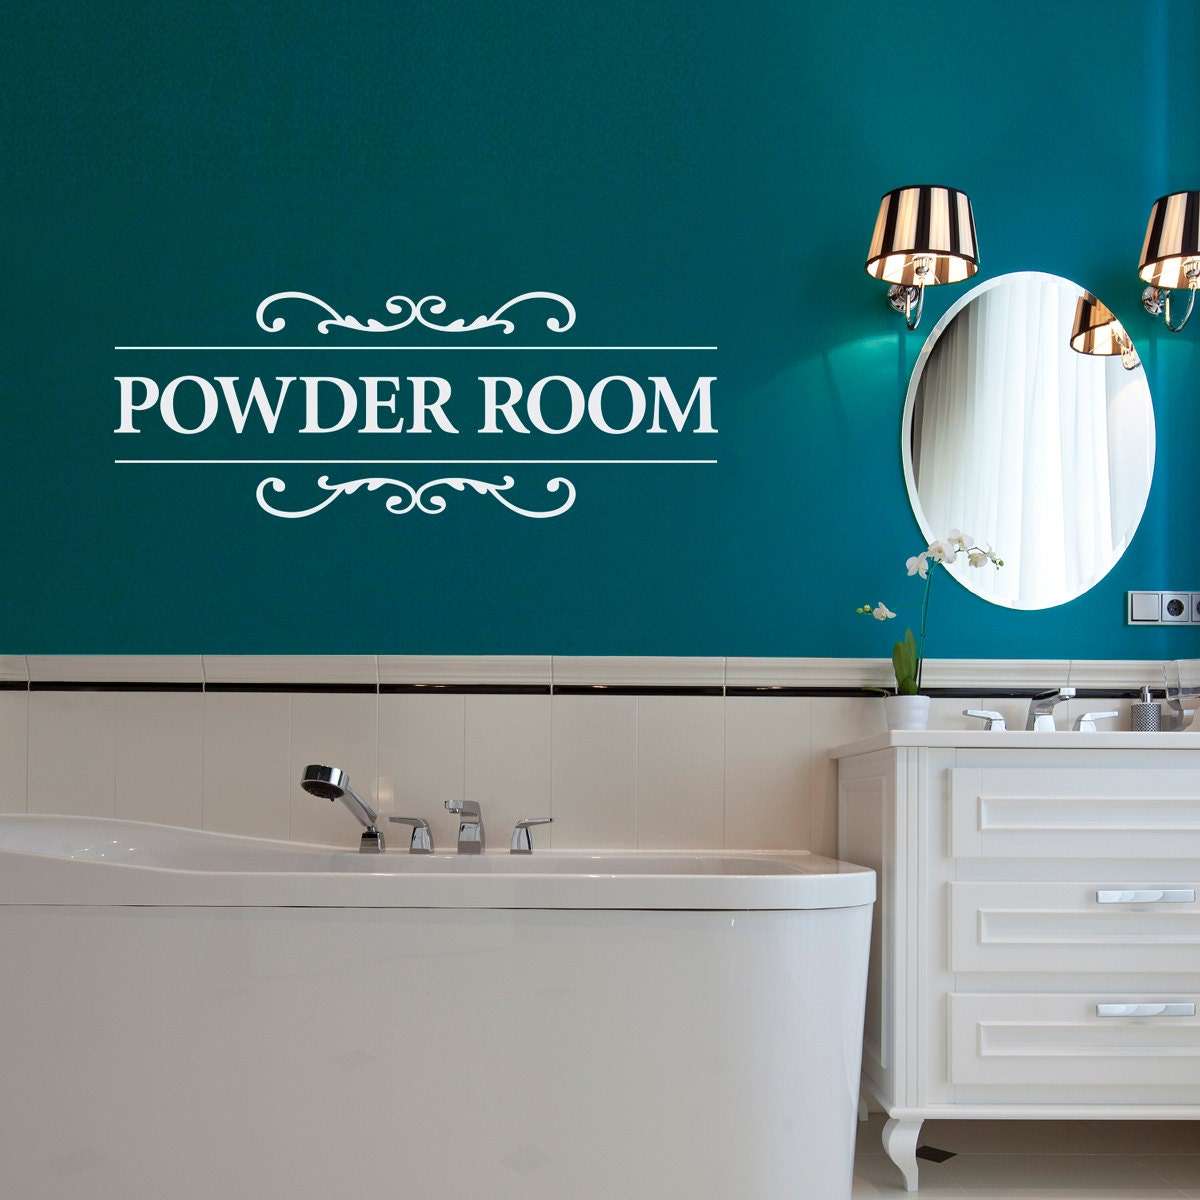 Powder Room Decal Bathroom Wall Decor Restroom Wall Decal Powderroom